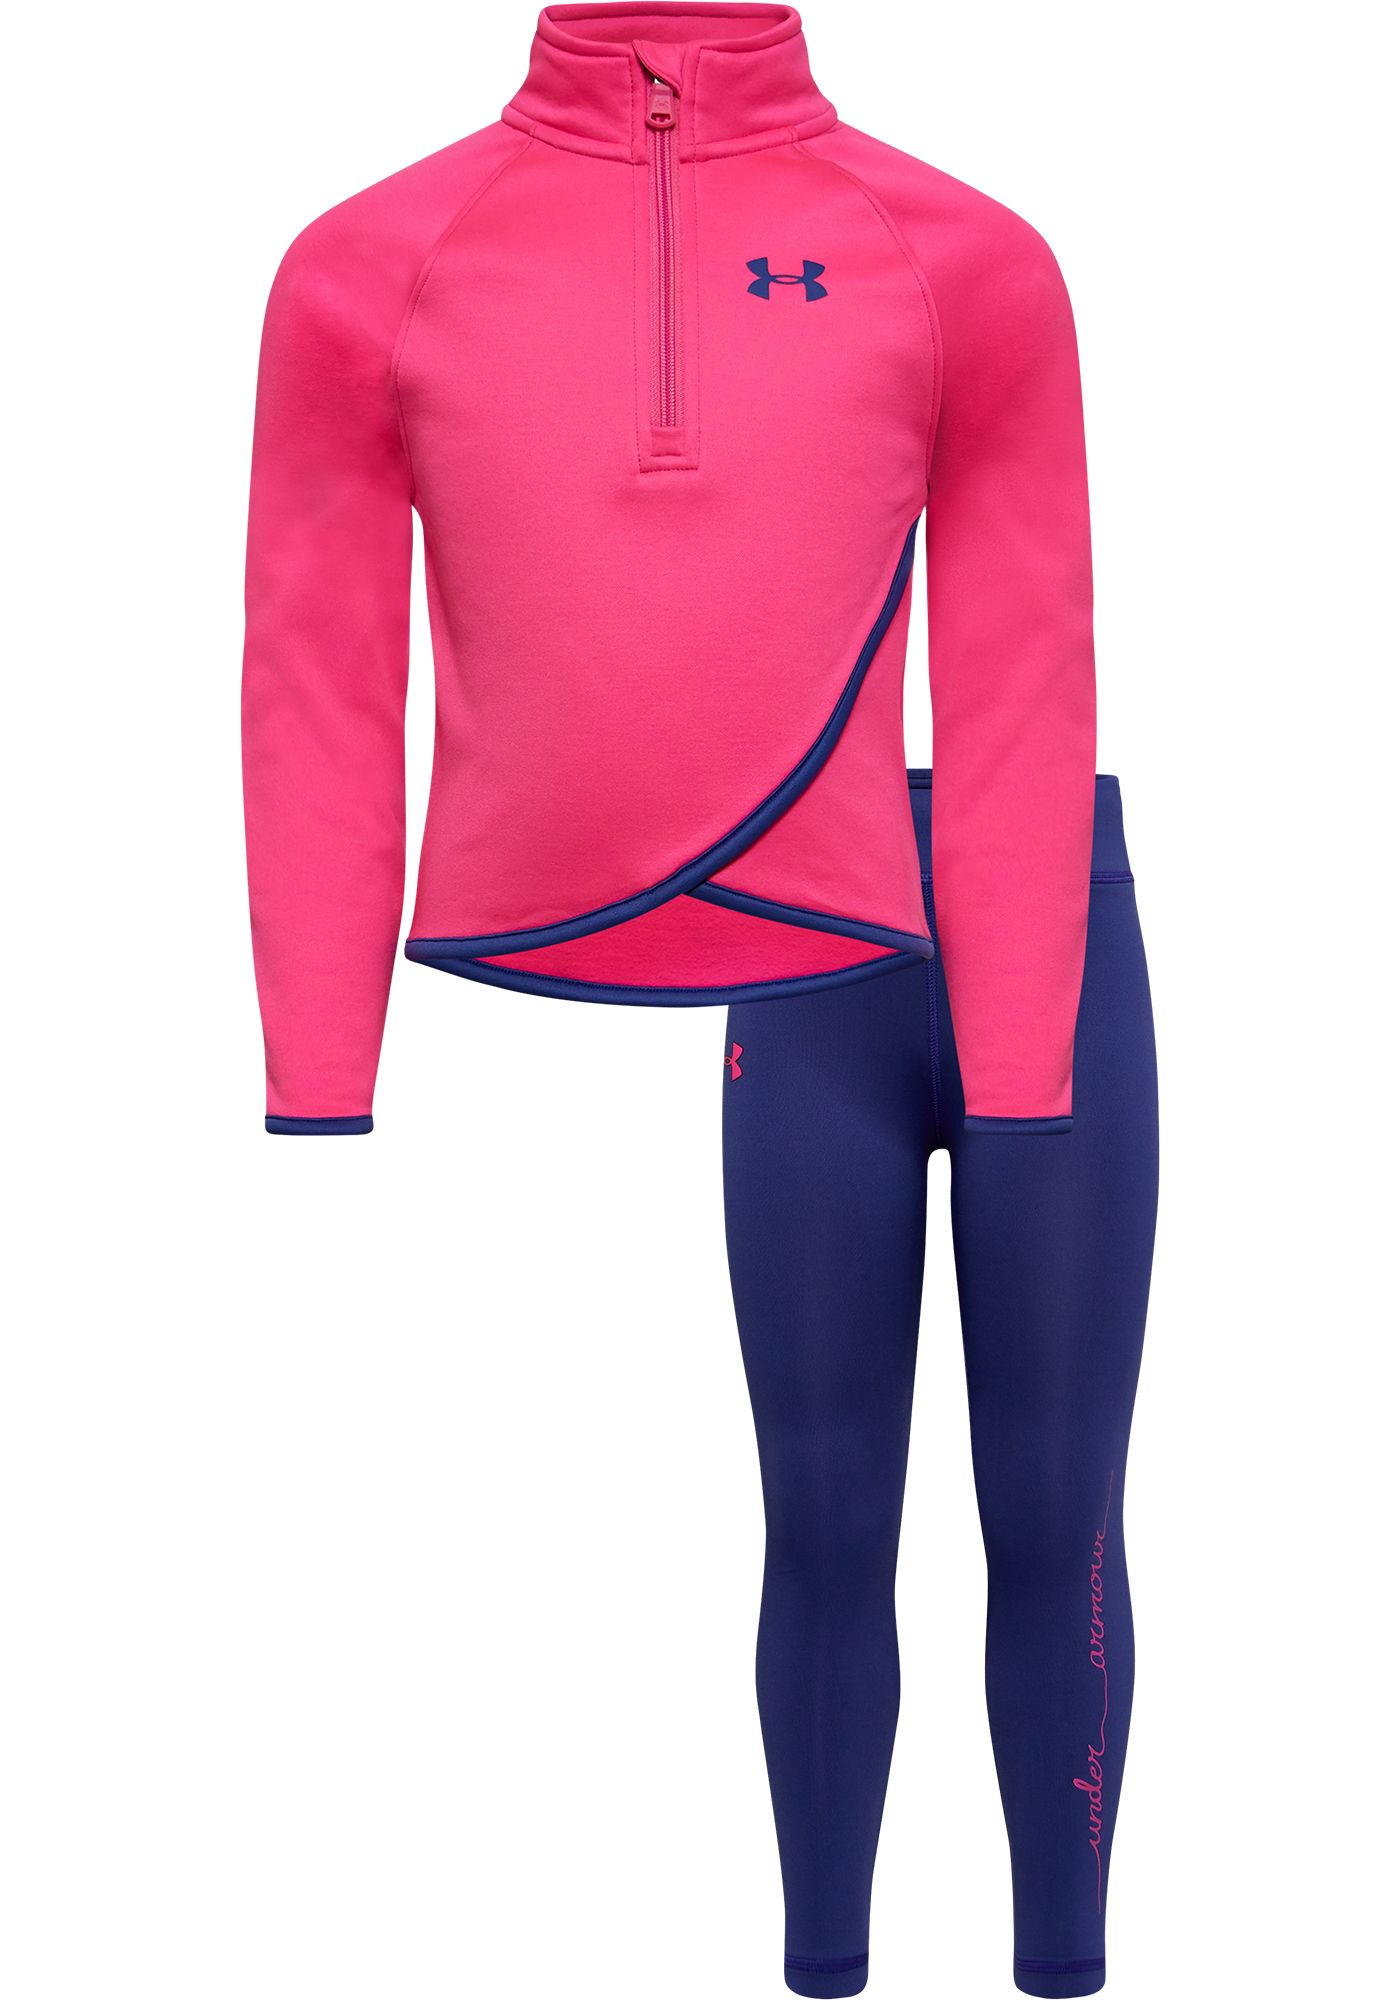 Under Armour Little Girls' Crossover 1/4 Zip Long Sleeve Shirt and Leggings Set